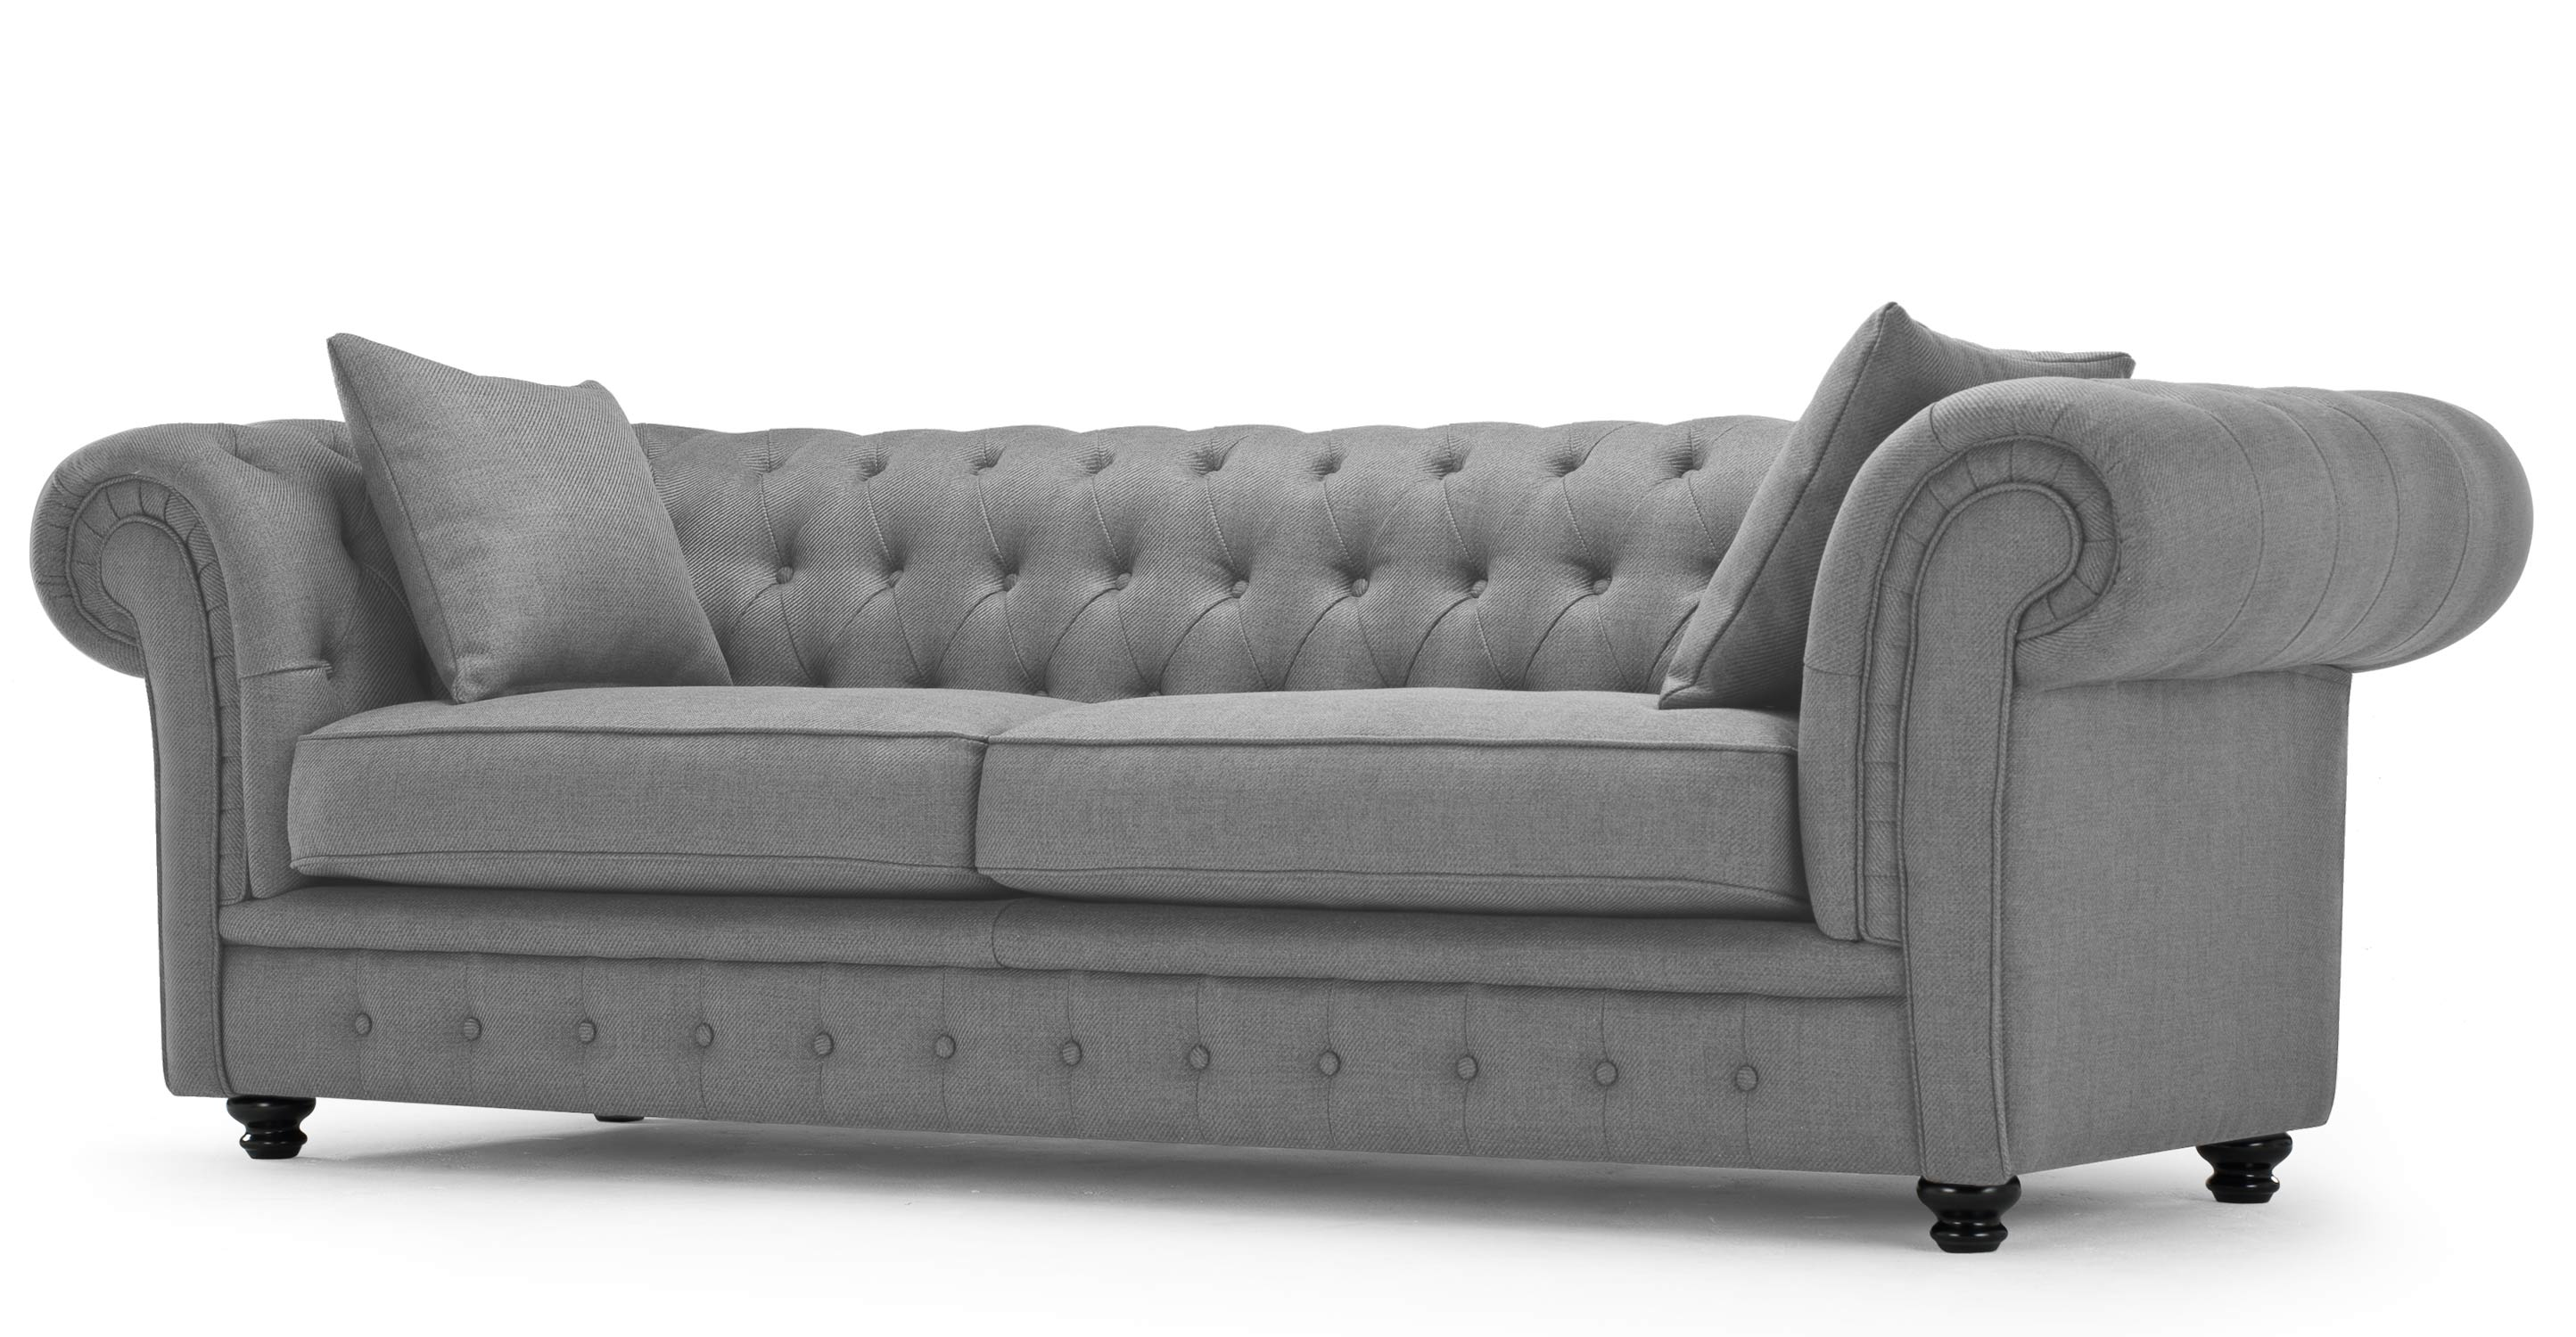 Branagh 3 seater grey chesterfield sofa for Black and grey couch